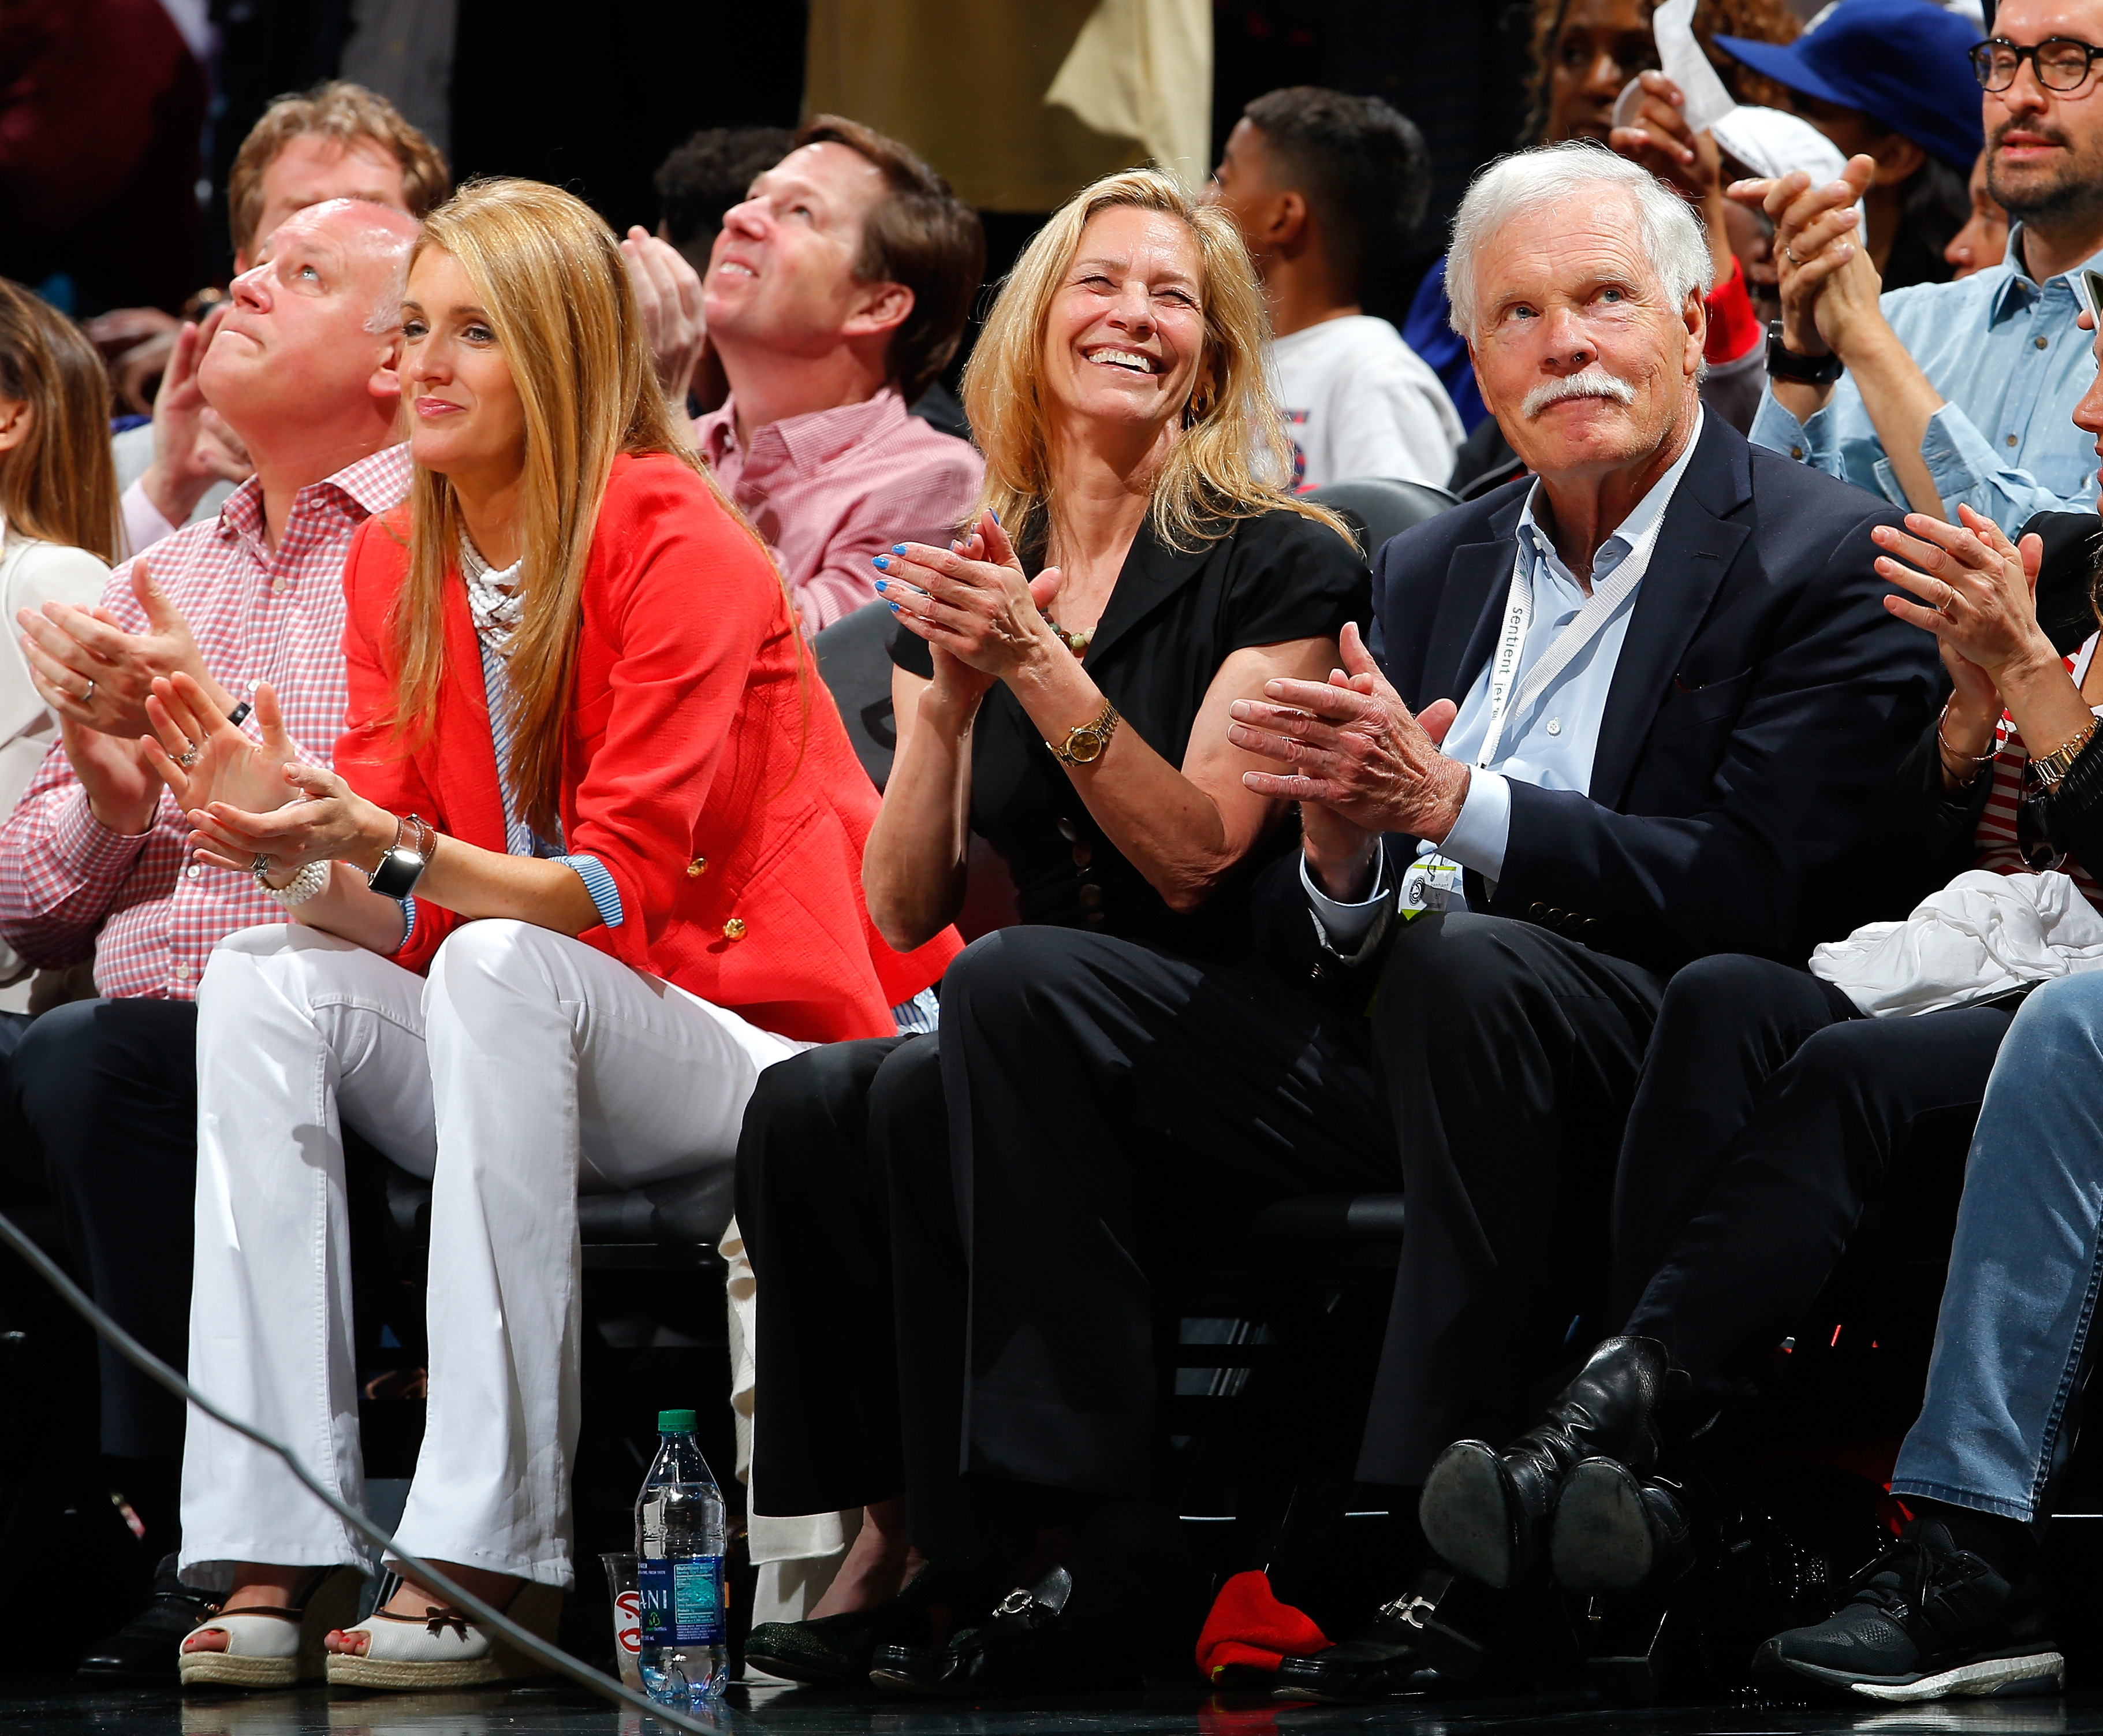 Ted Turner attends Game Five of the Eastern Conference Quarterfinals between the Atlanta Hawks and the Boston Celtics during the 2016 NBA Playoffs at Philips Arena on April 26, 2016, in Atlanta, Georgia. (Getty Images)